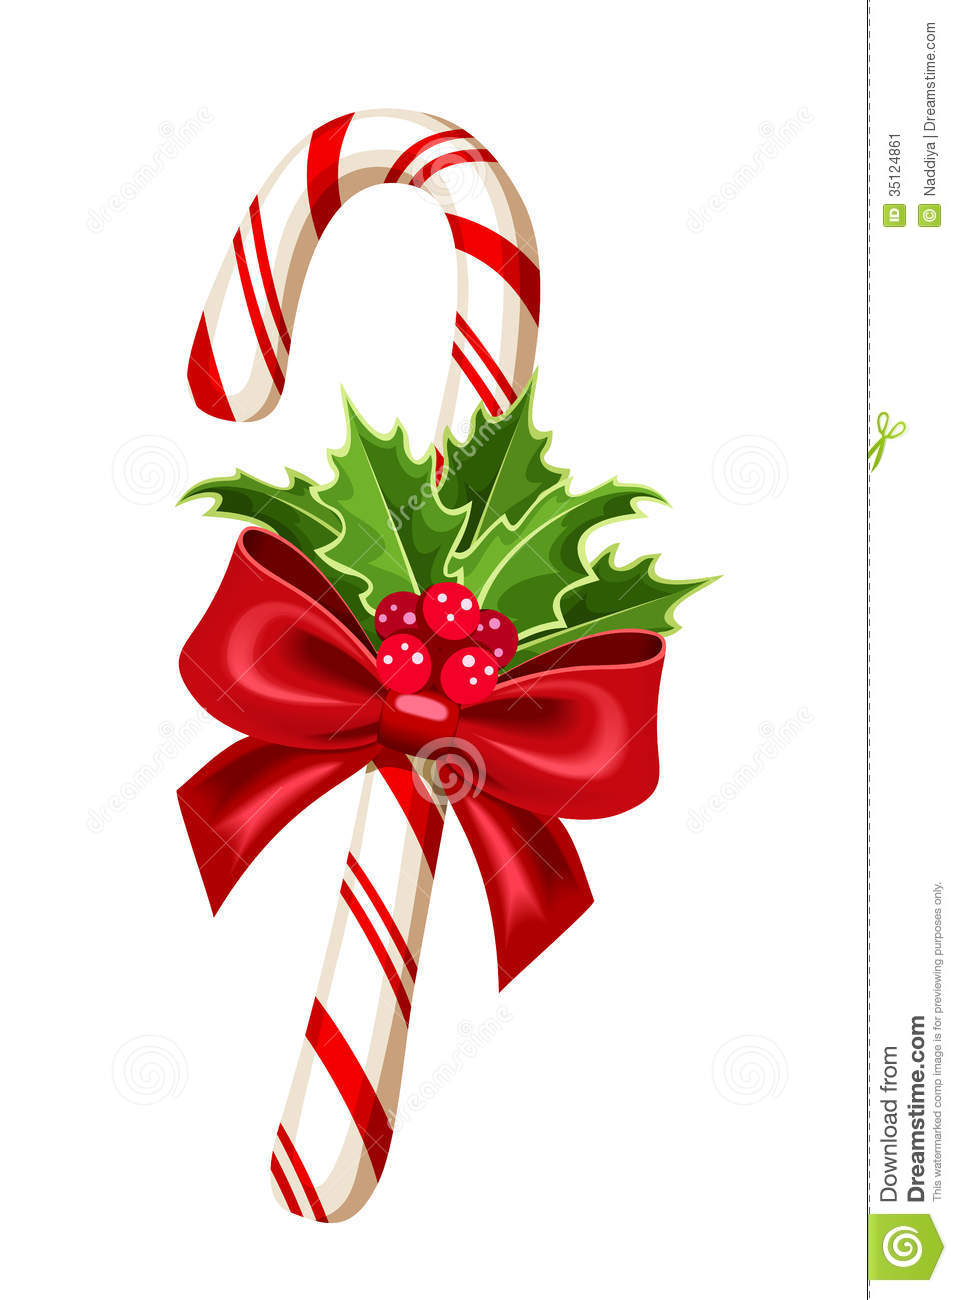 957x1300 Candy Cane Clipart Christmas Holly